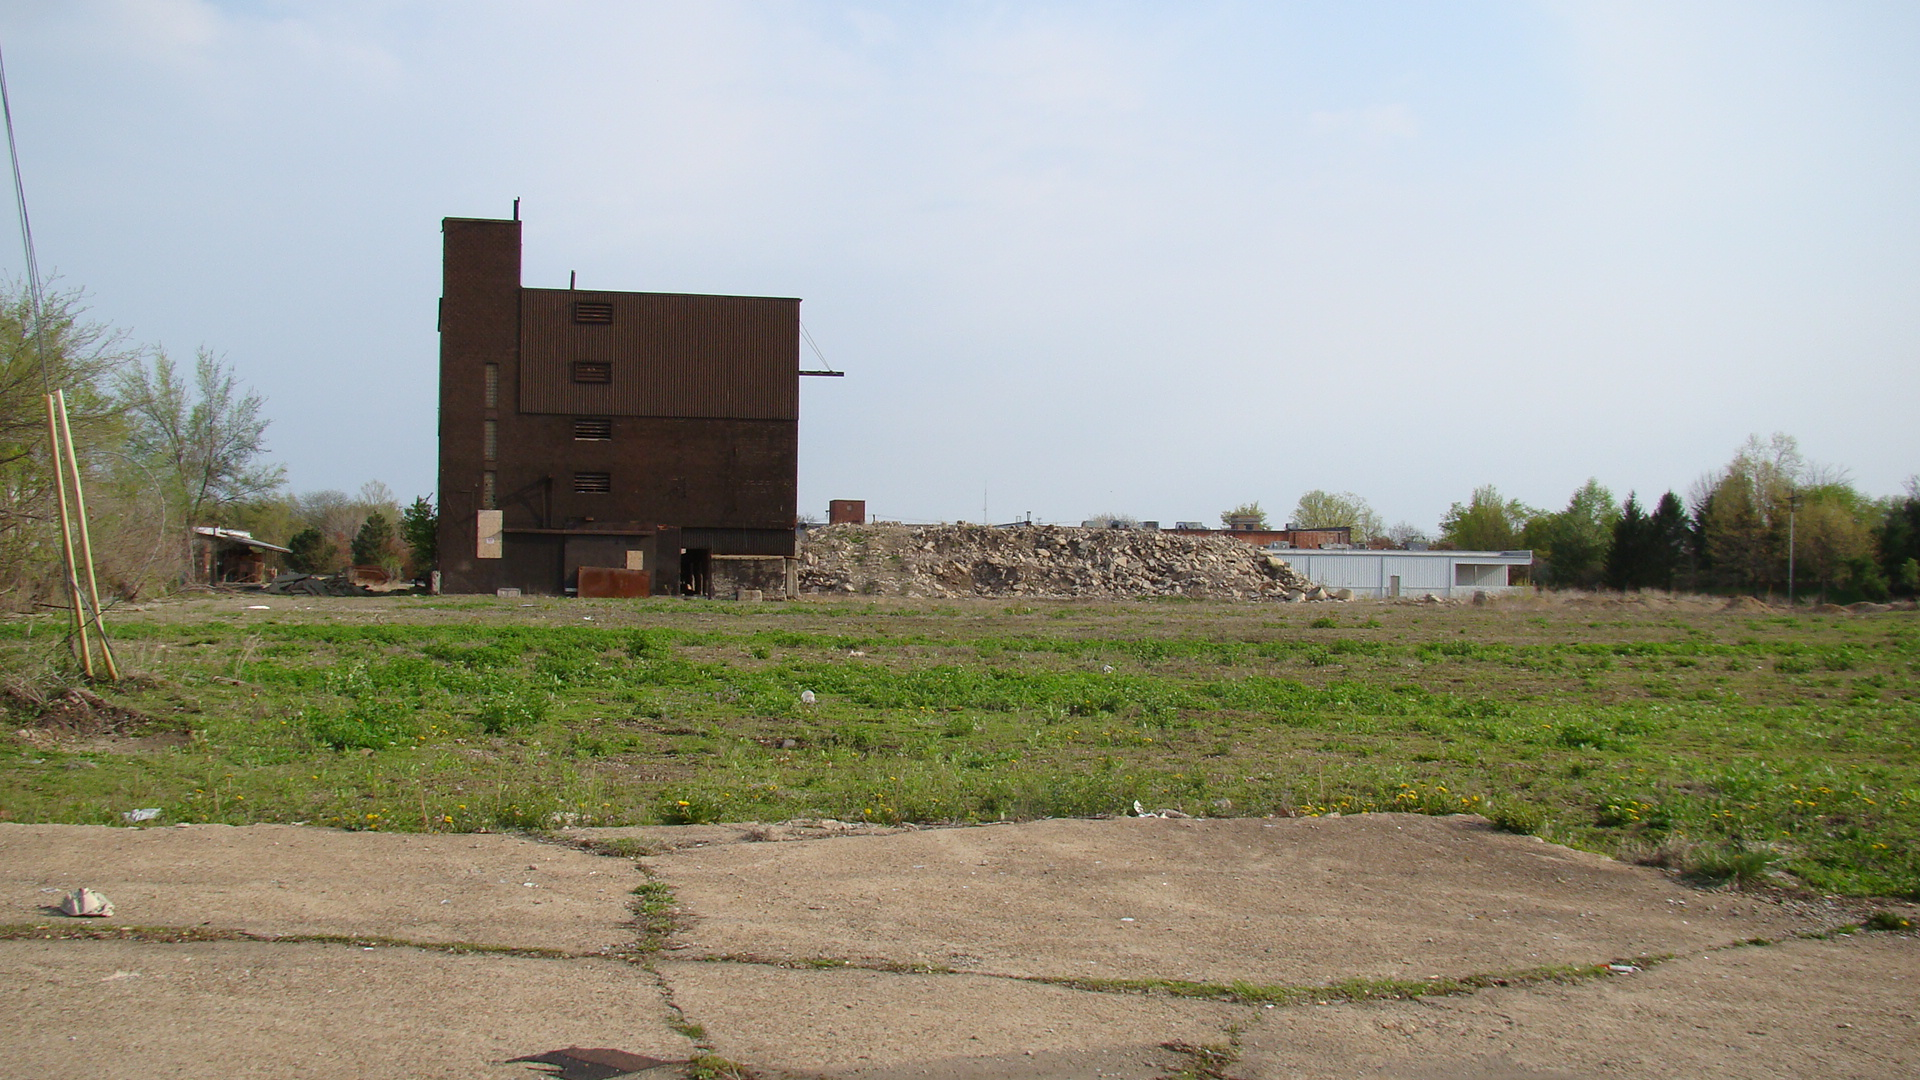 issues of the development of brownfield sites An indicator framework to measure effects of brownields redevelopment on public health lic health issues the issues include reduced development of abandoned sites, vacant lots, and vacant buildings.